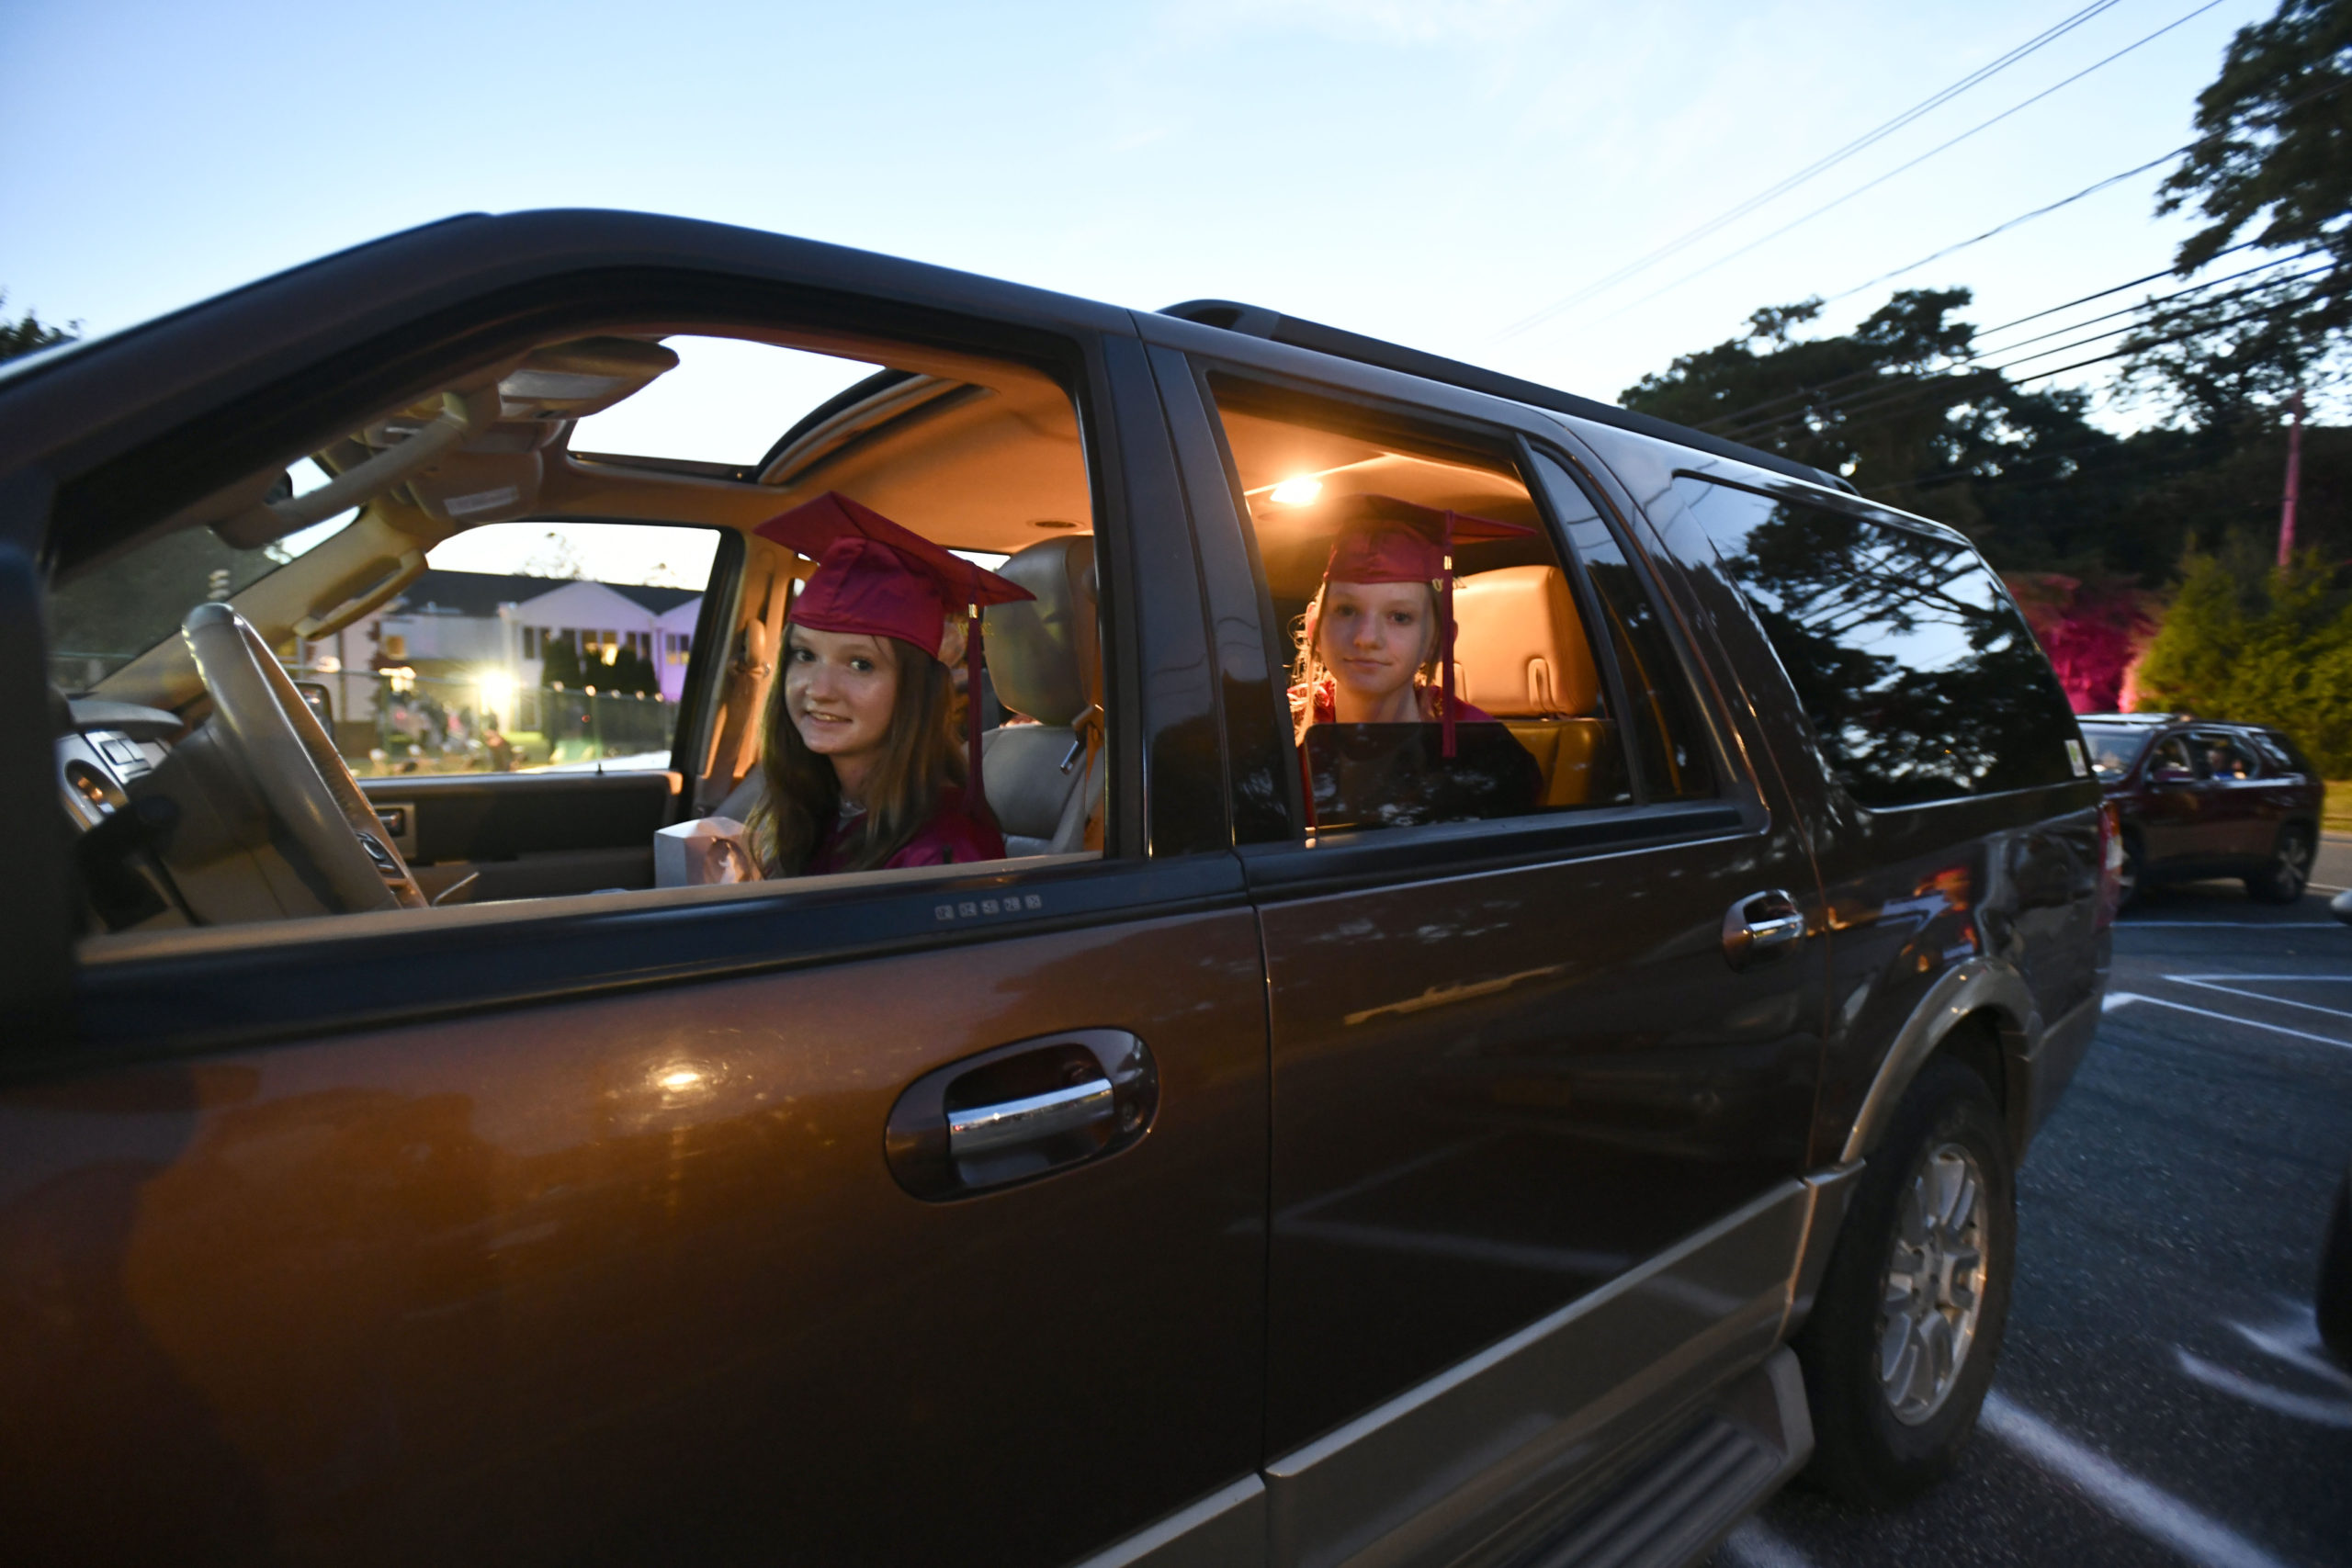 Alison and Claire Schneider wait their turn to go on stage to collect their diplomas at Tuckahoe School's eighth grade graduation on Friday.  DANA SHAW